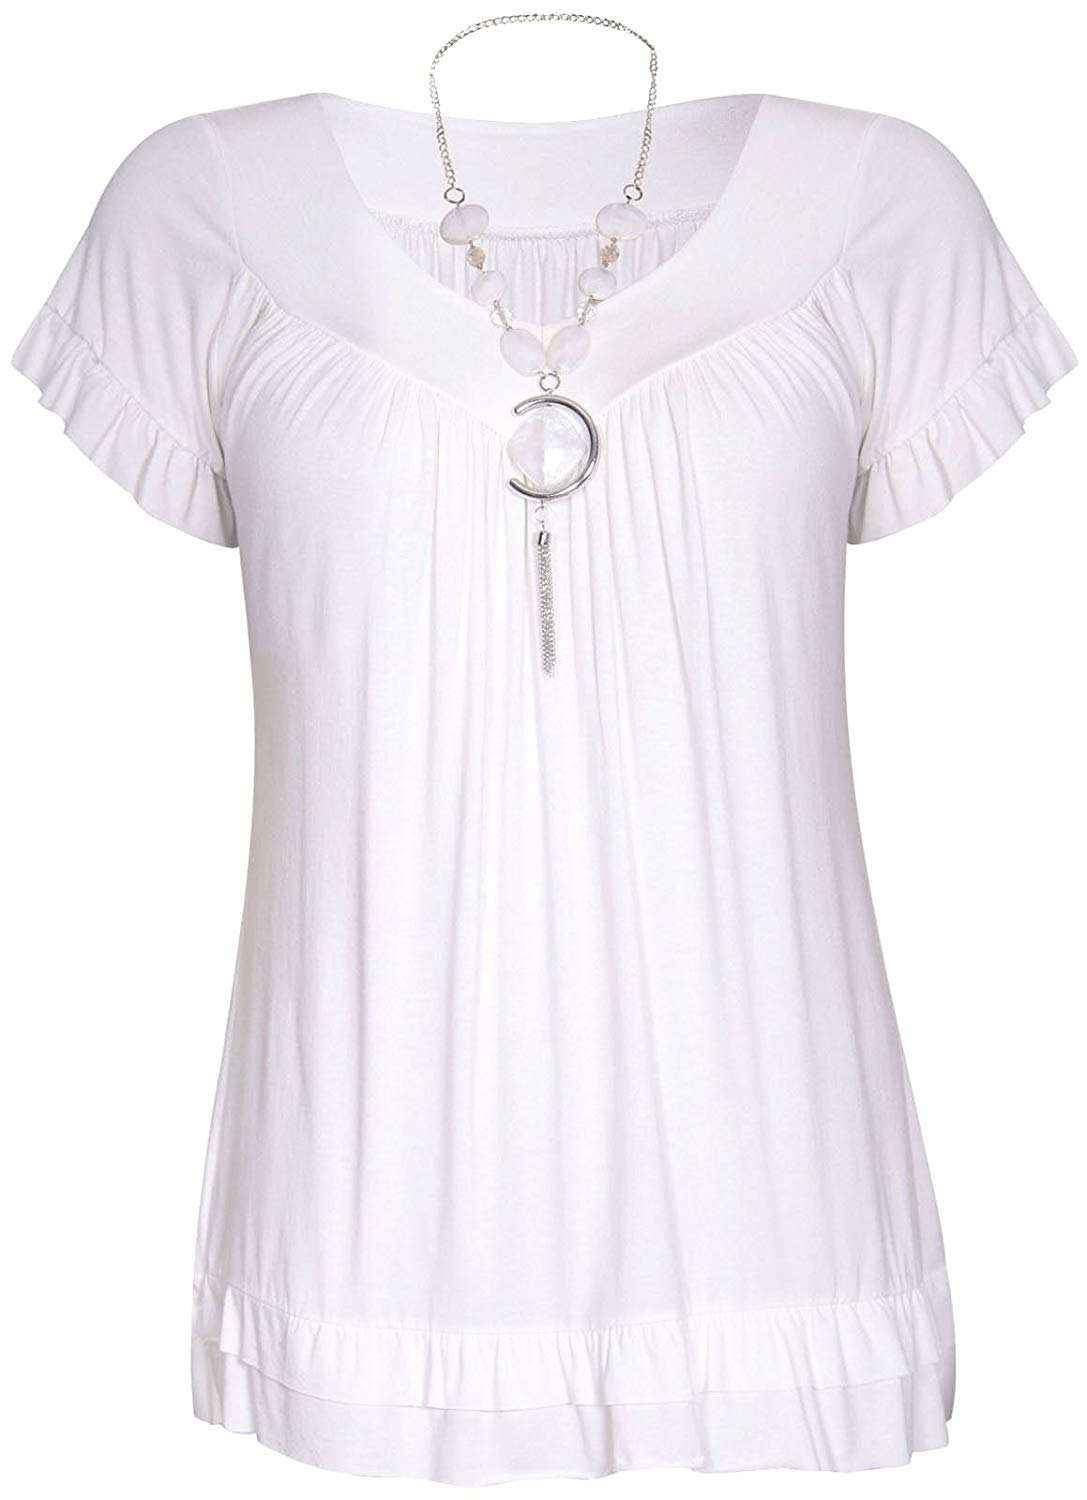 44f1a770df Get Quotations · Chocolate Pickle ® New Ladies Short Sleeve White Necklace Gypsy  Tops